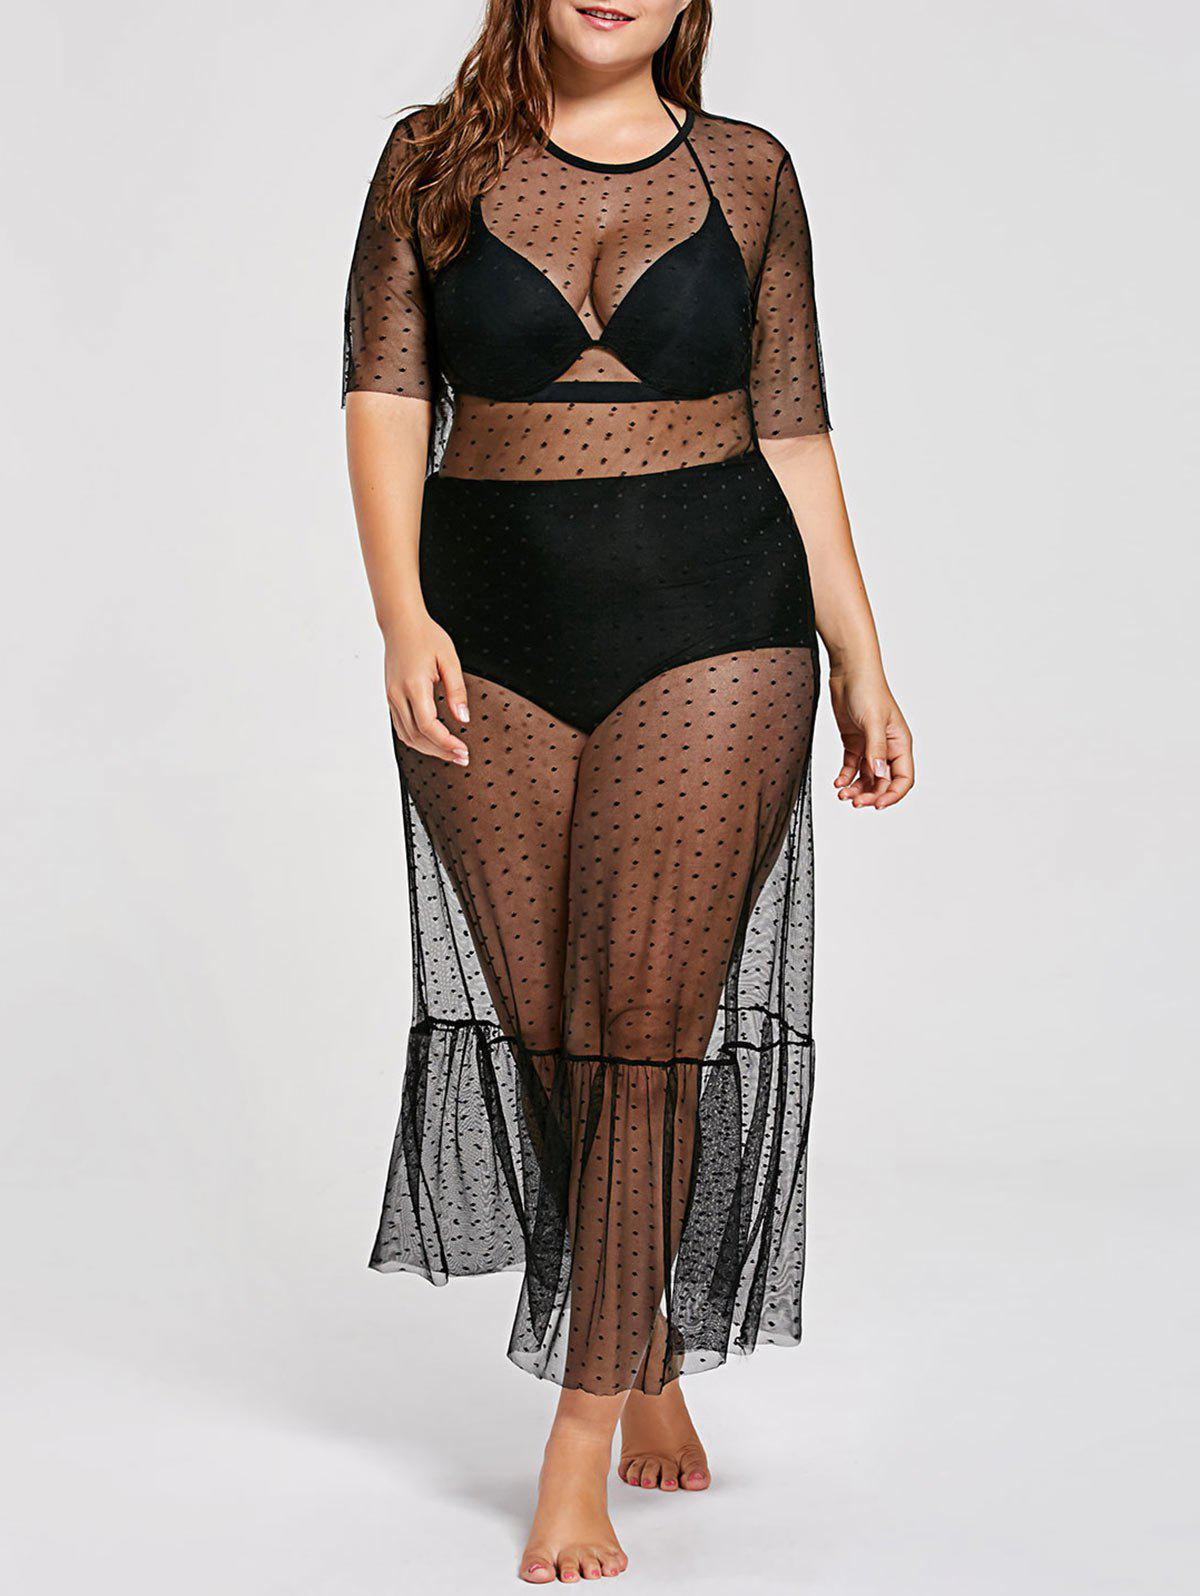 Plus Size See Through Cover Up DressWOMEN<br><br>Size: 3XL; Color: BLACK; Gender: For Women; Swimwear Type: Cover-Up; Material: Polyester; Pattern Type: Solid; Embellishment: Mesh; Waist: Natural; Weight: 0.1900kg; Package Contents: 1 x Dress;